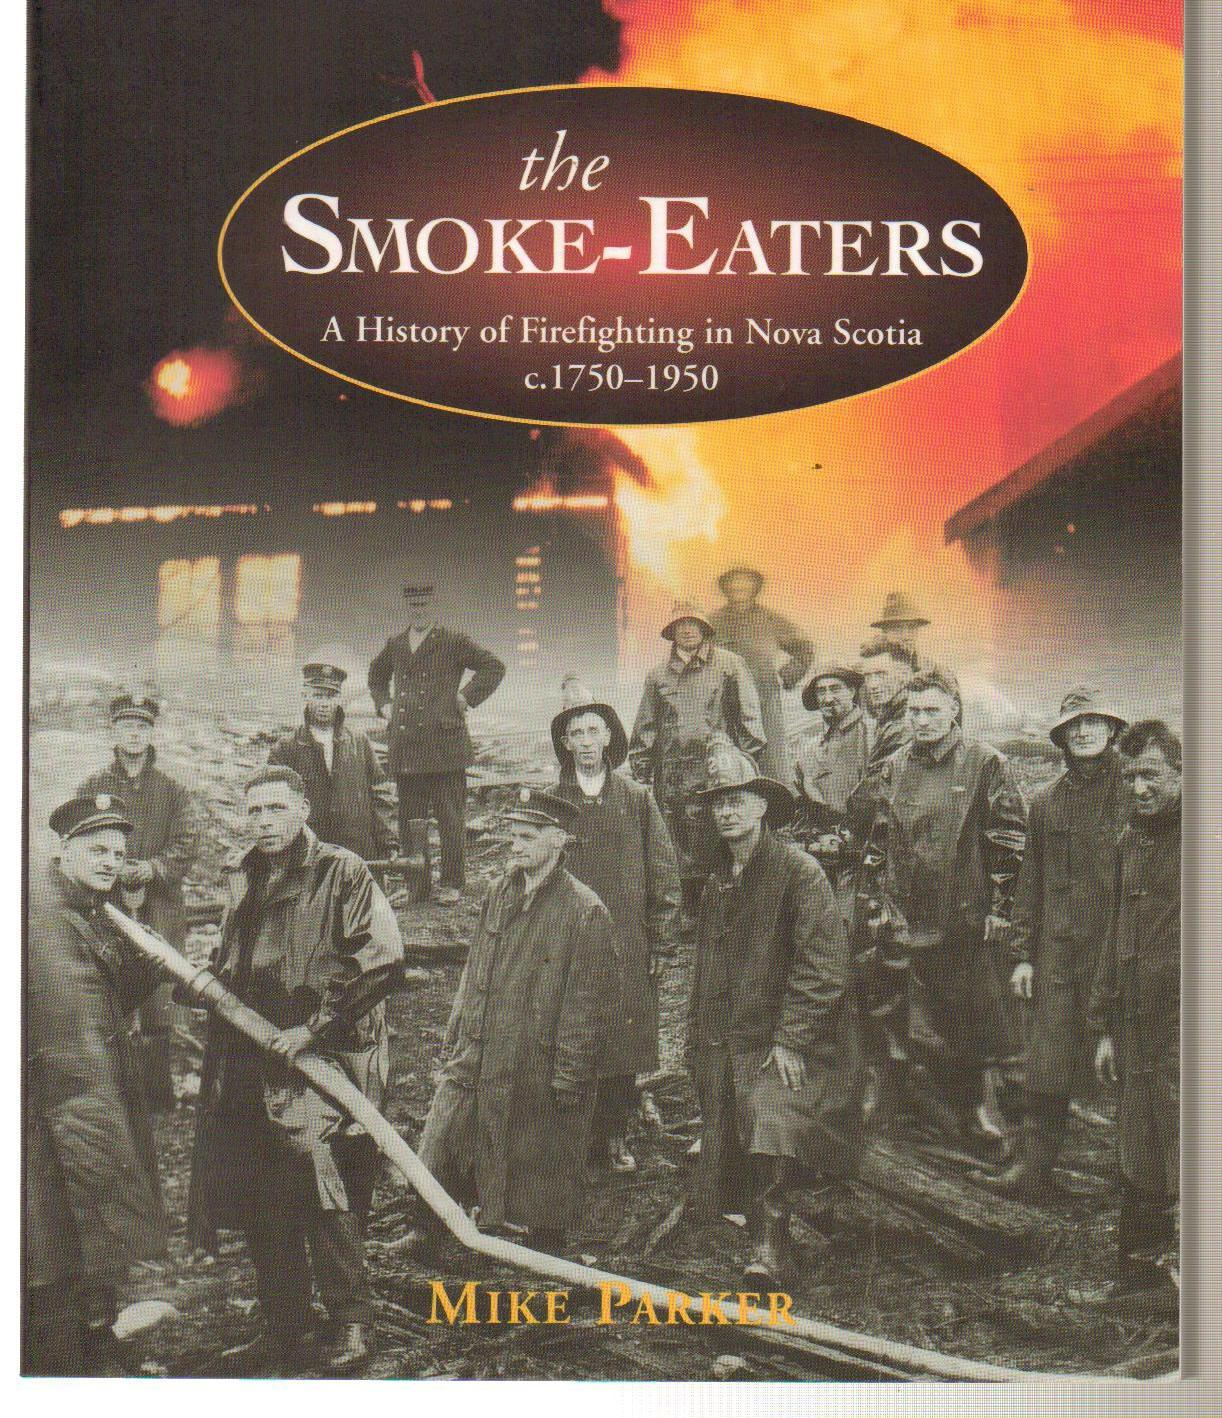 Image for The Smoke-Eaters : A History of Firefighting in Nova Scotia c. 1750-1950.  First Edition